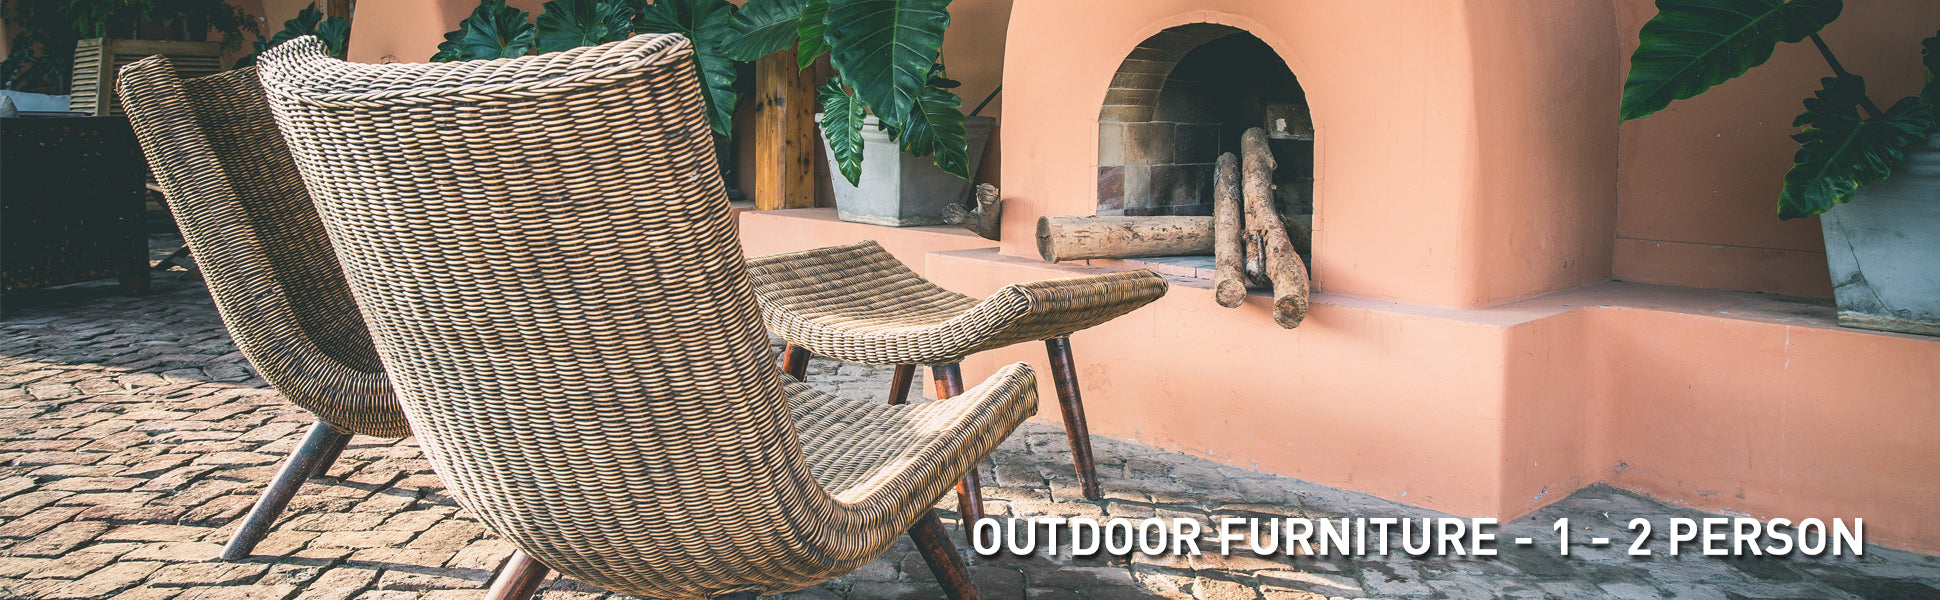 Outdoor Furniture - 1 - 2 Person